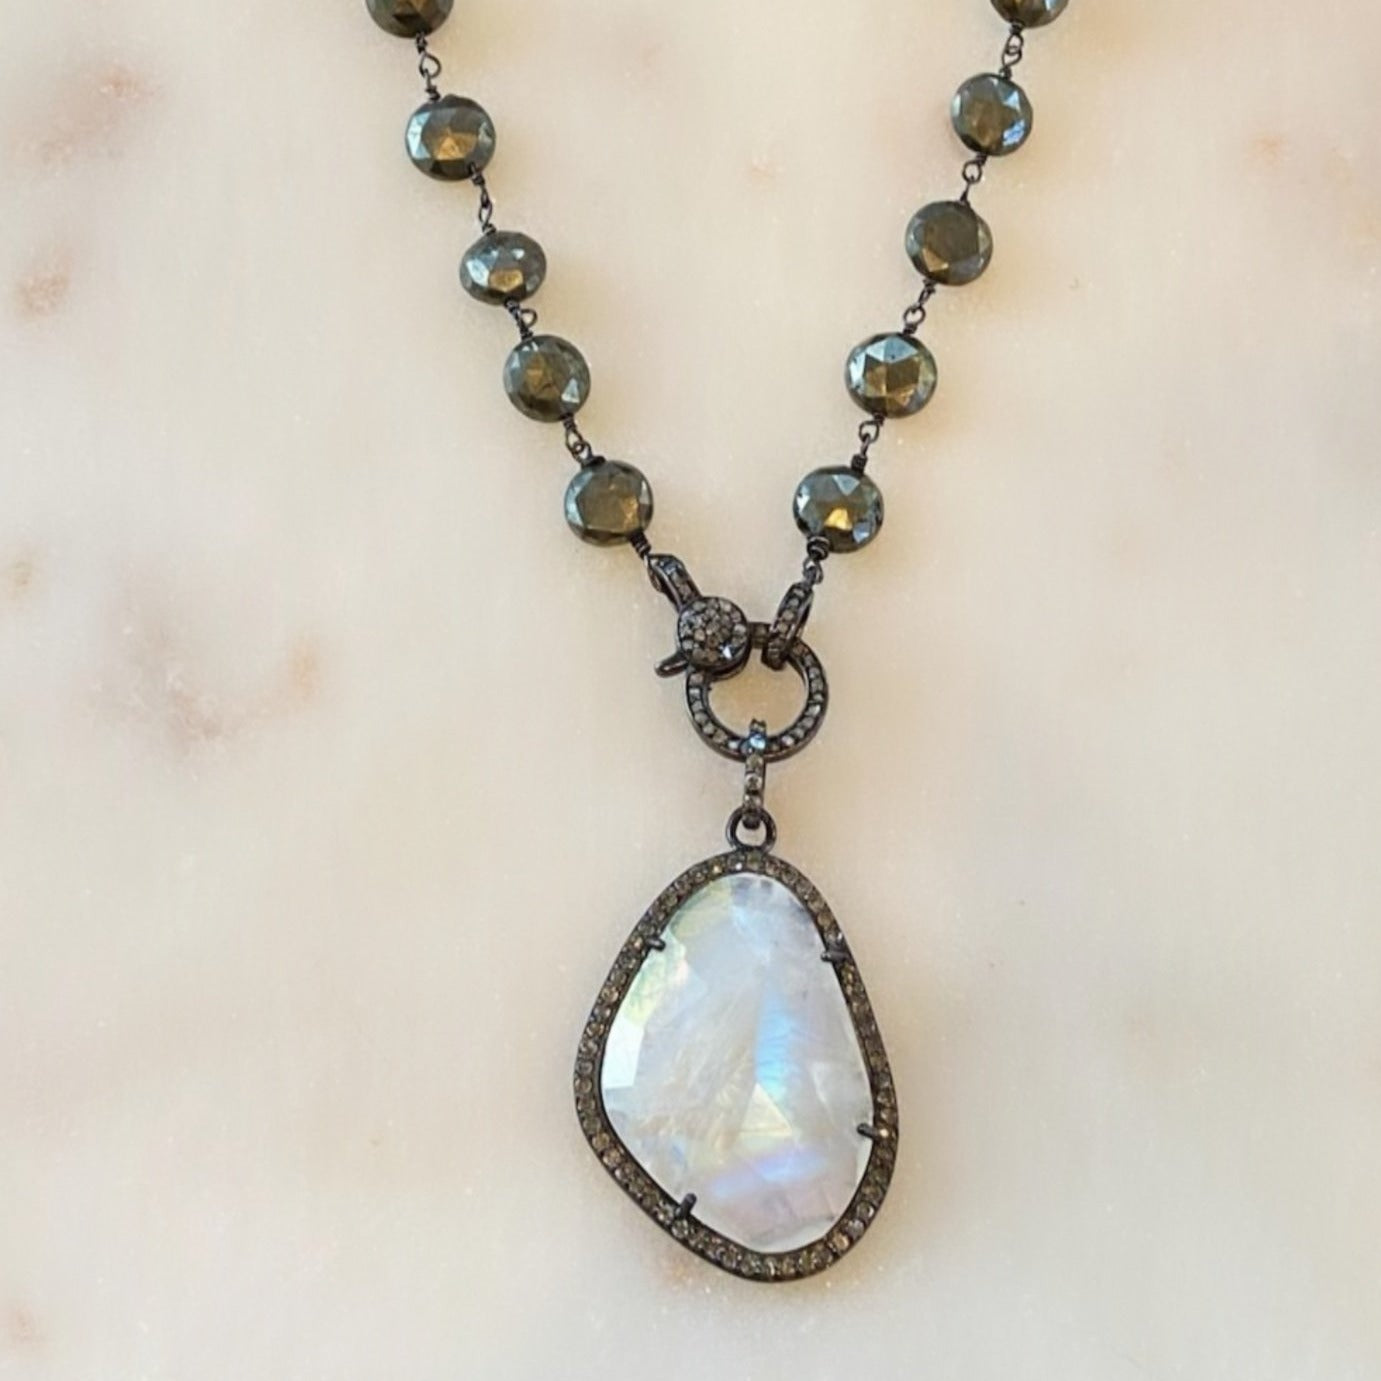 Moonstone on Pyrite Chain